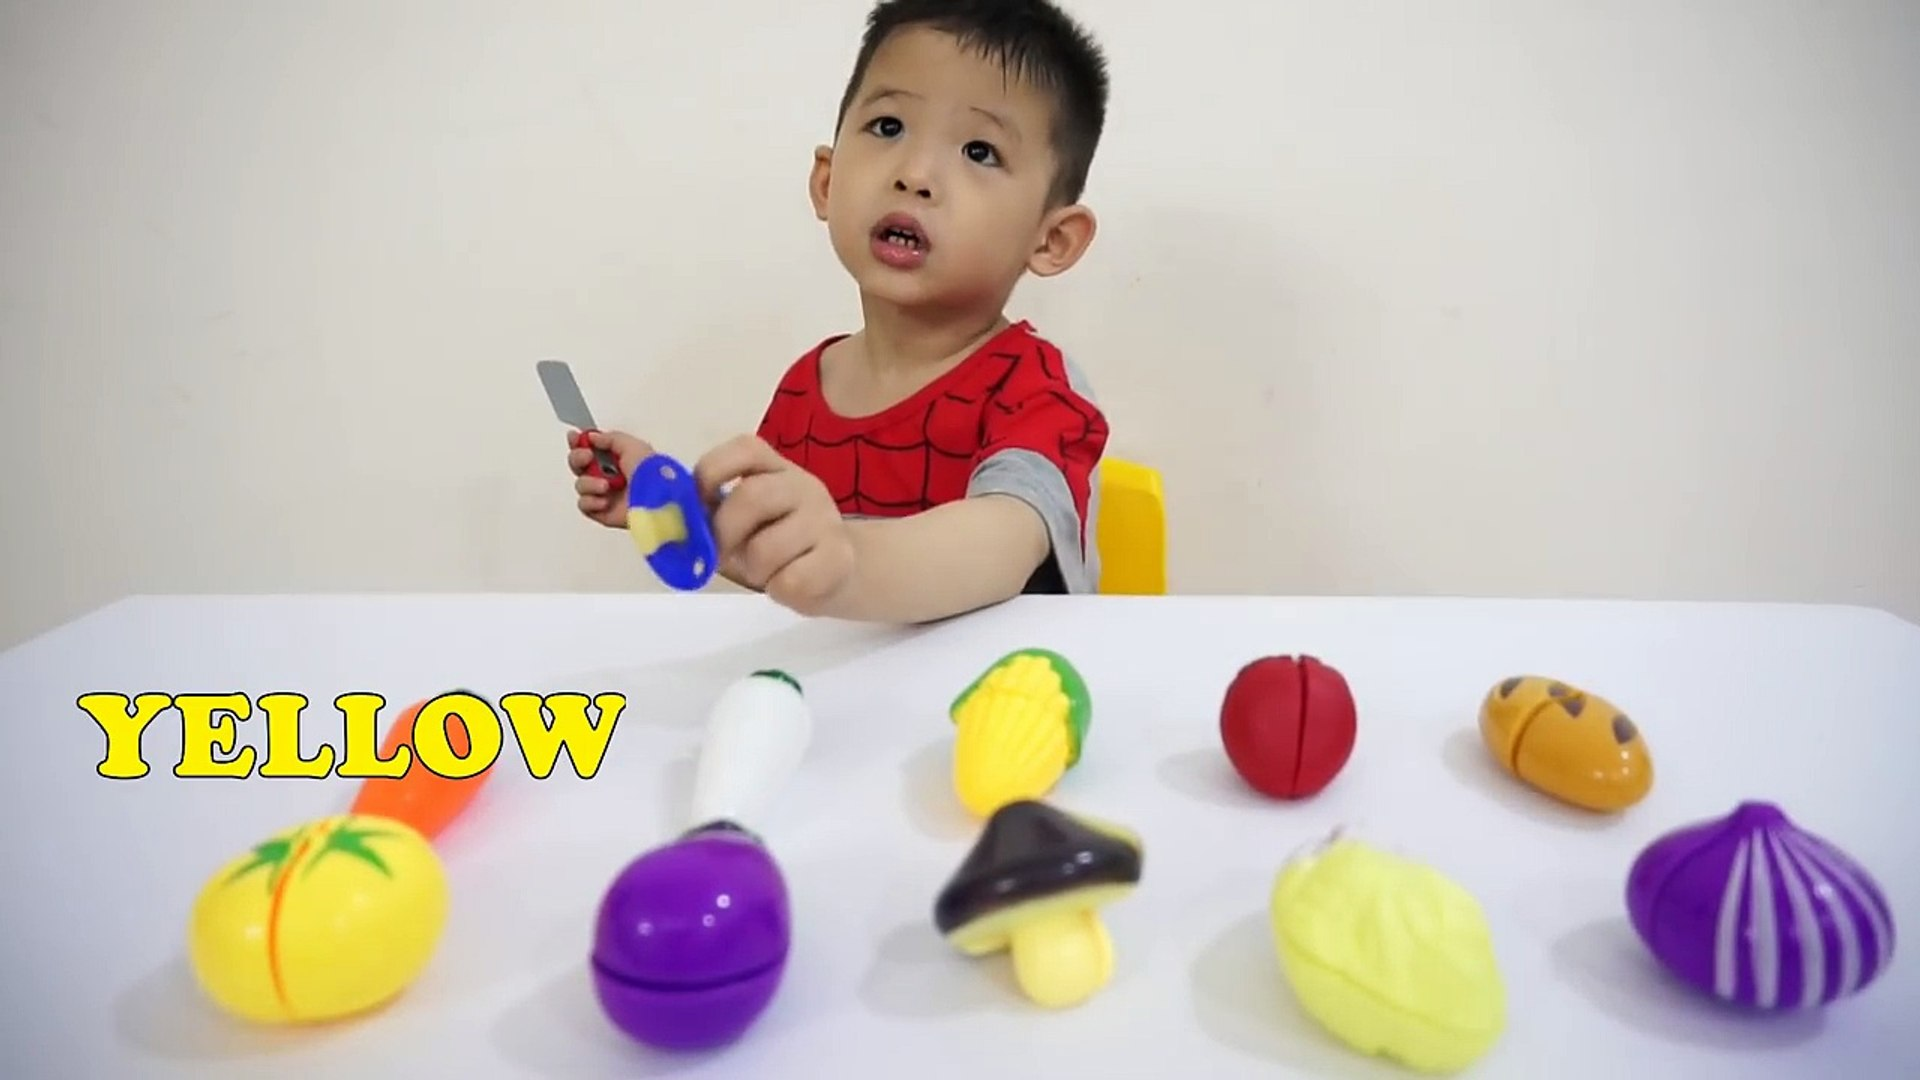 Bad kid learn colors with cutting vegetables for children, toddlers and babies-Kids education video